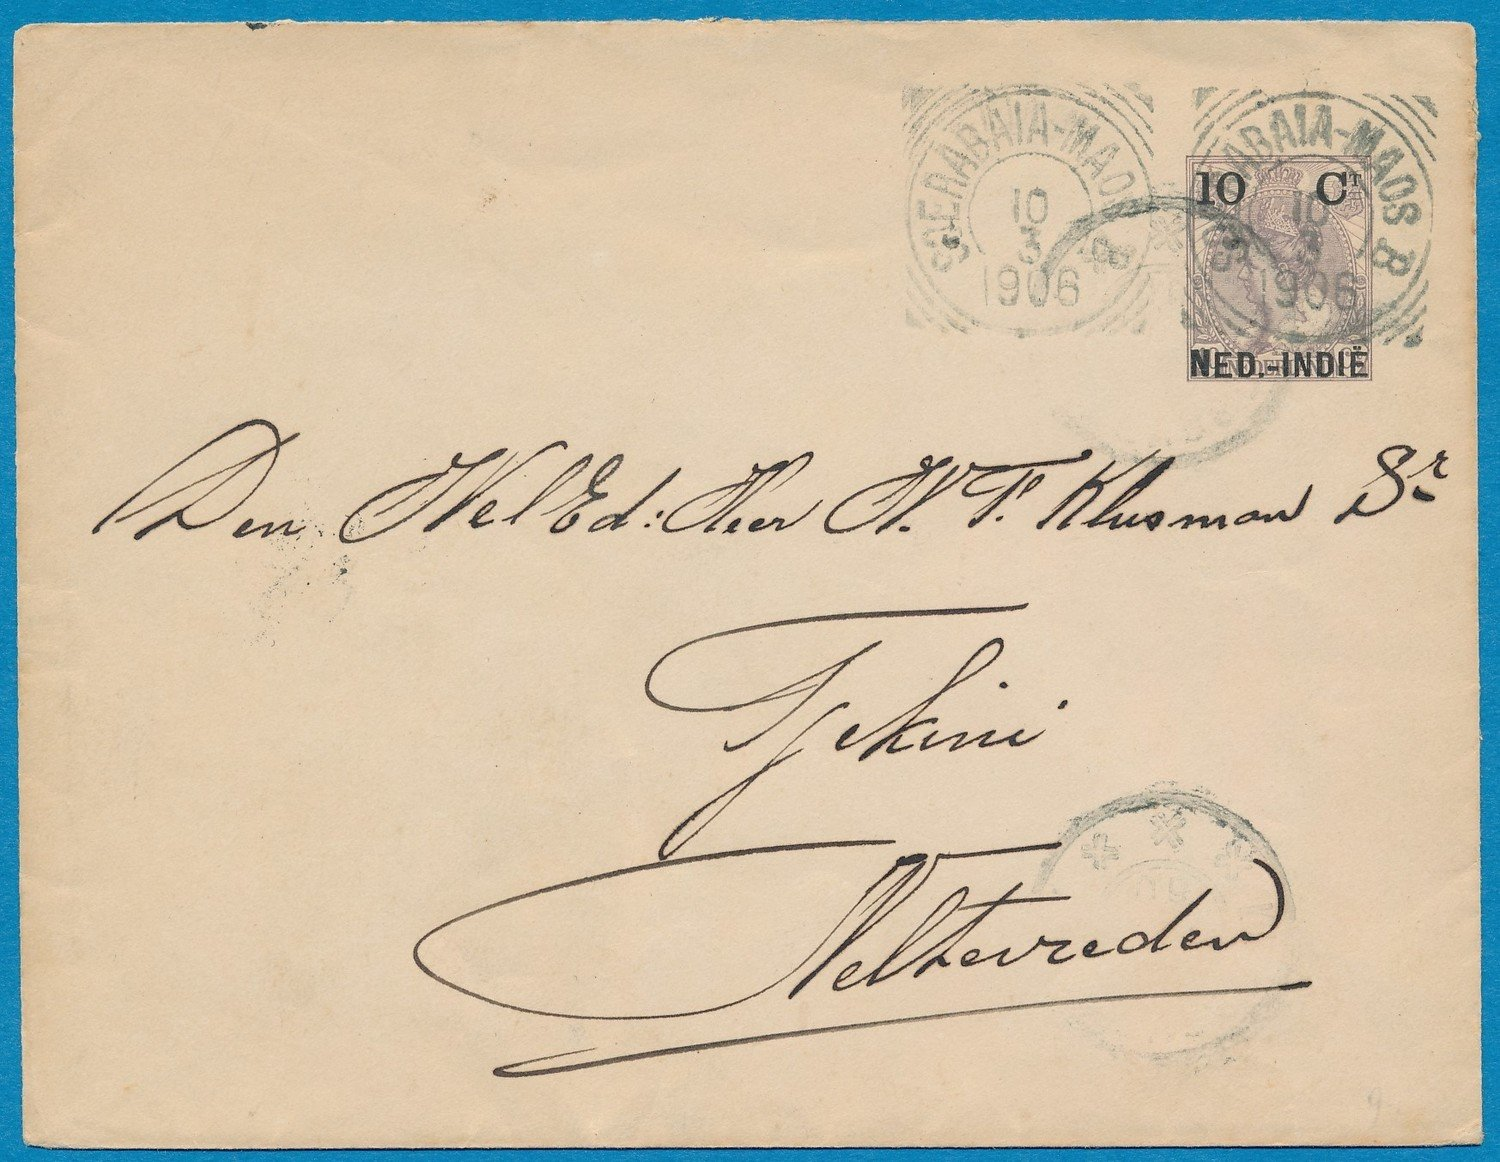 NETHERLANDS EAST INDIES envelope 1906 traincancel